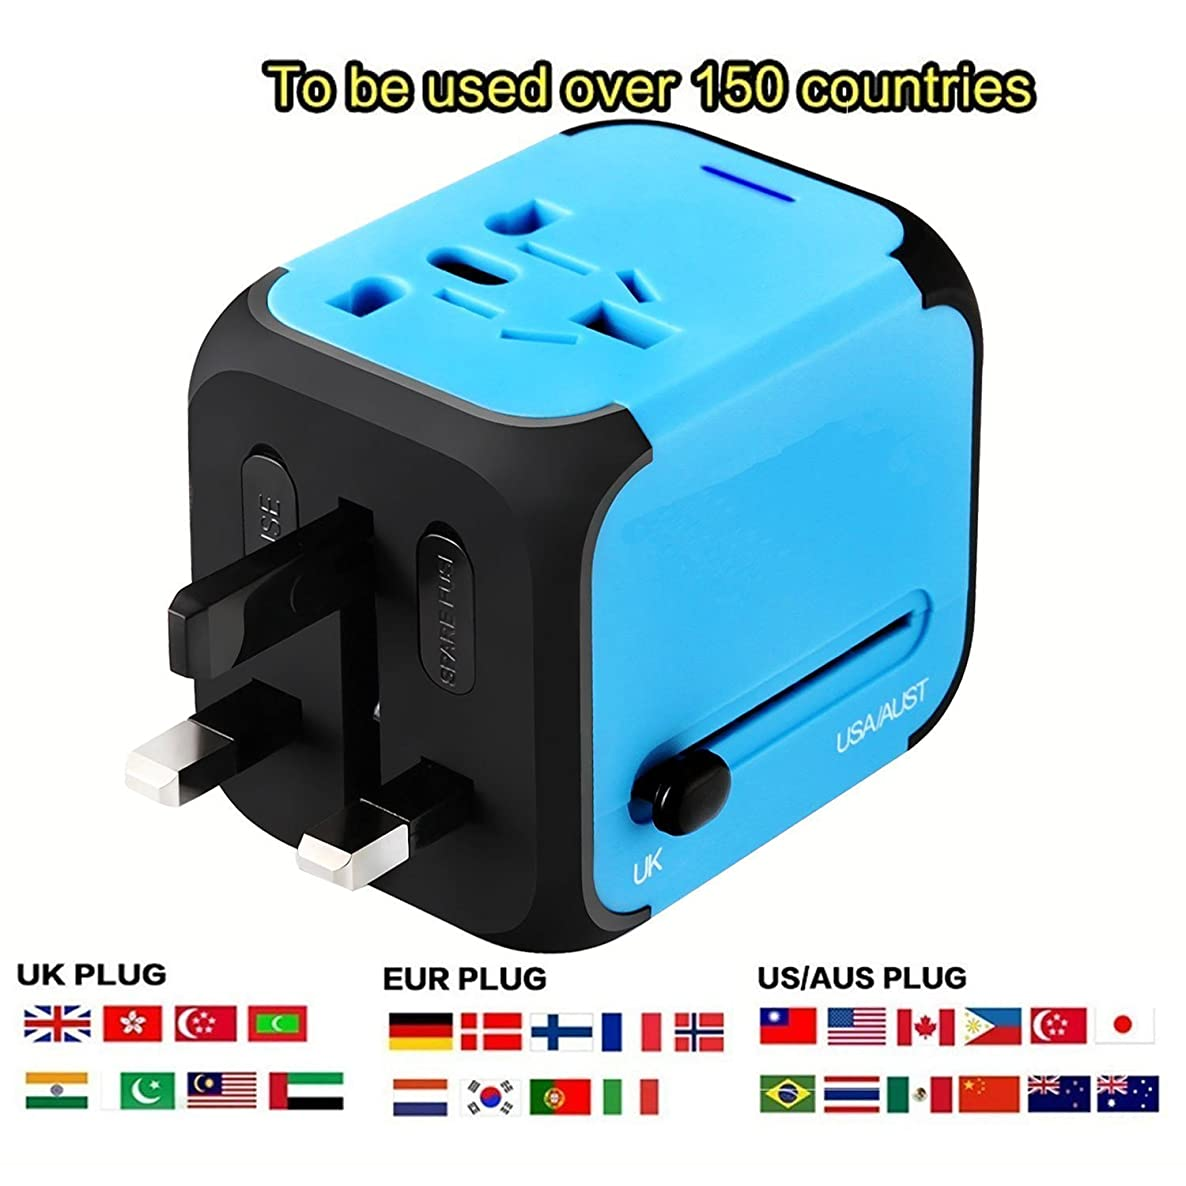 New Universal Travel Adapter Electric Plugs Sockets Converter US/UK/EU/AU with Dual USB Charging 2.4A LED Power Indicator Electric Plugs UK EU US AU International Travel Plug Adaptor Charge